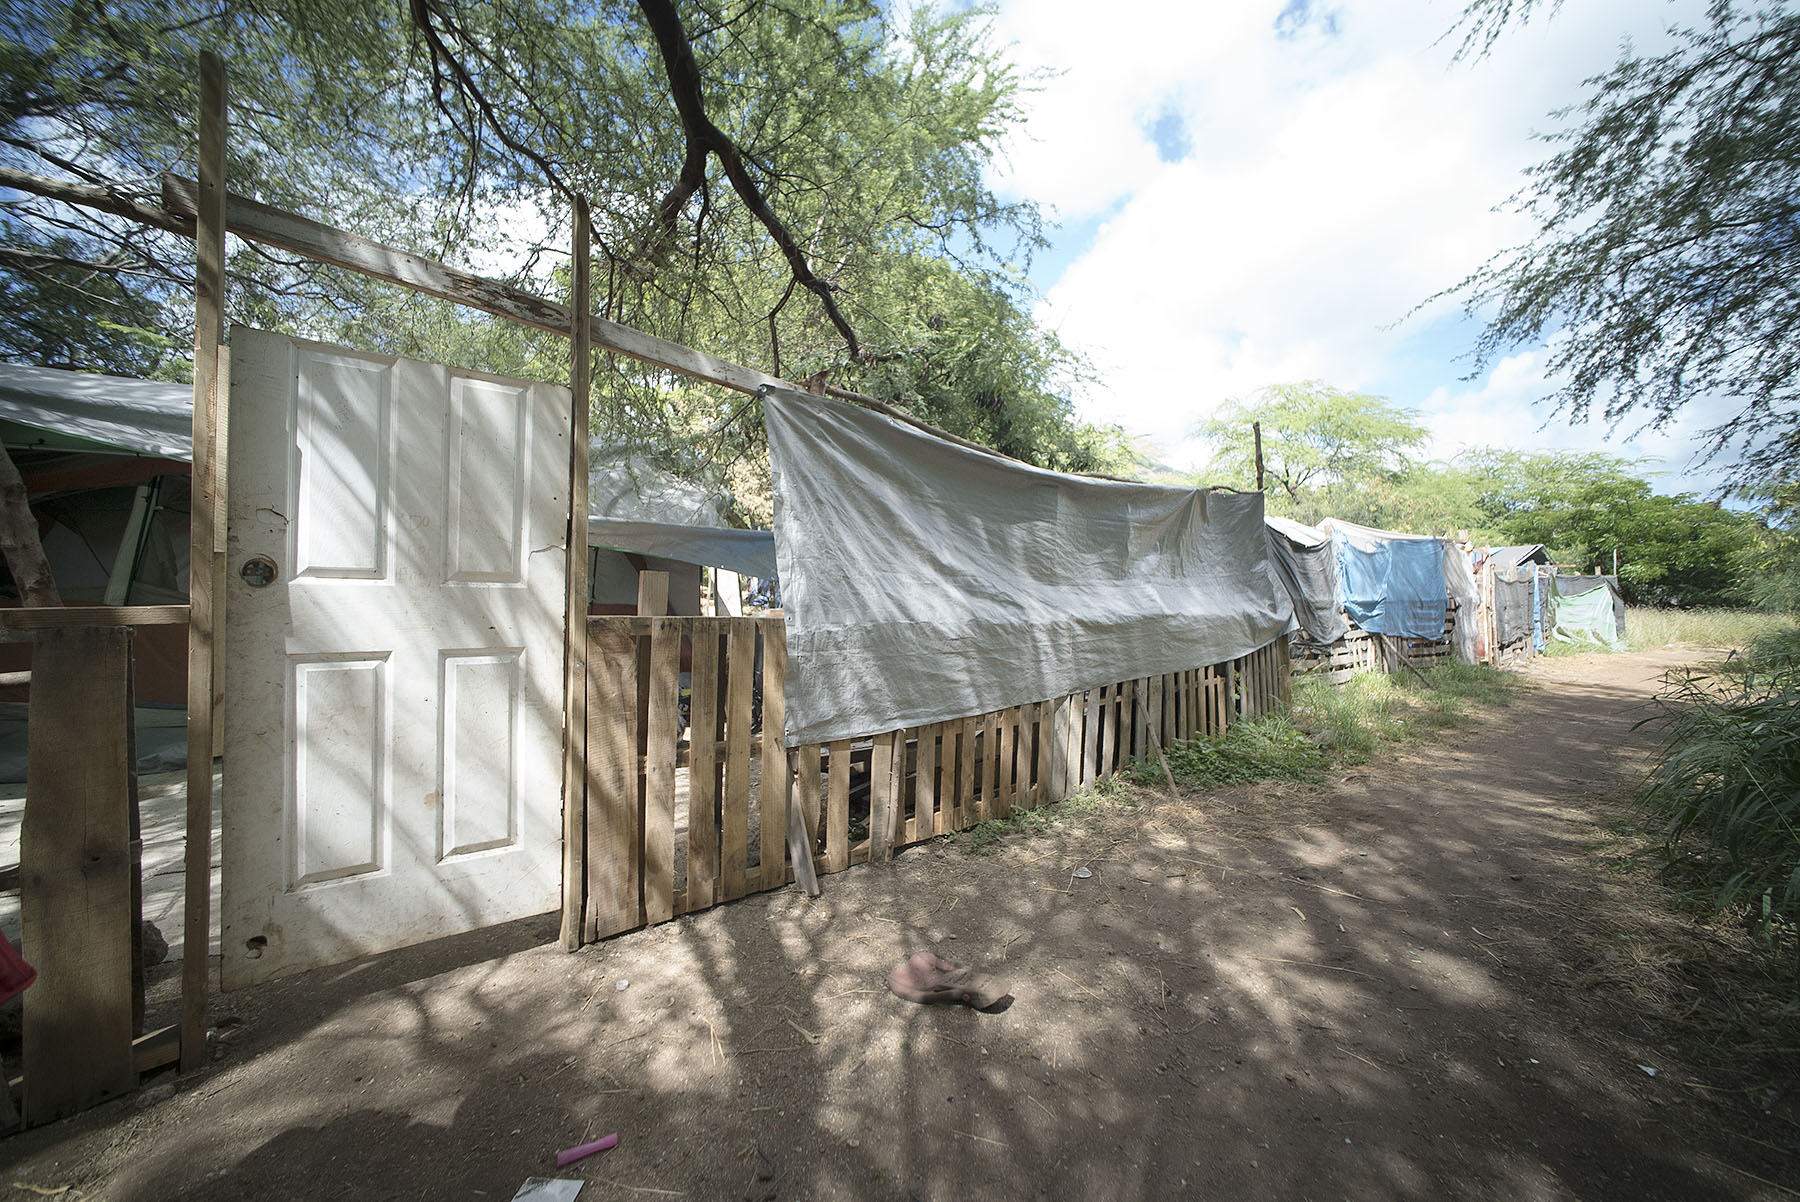 <p>In October one Micronesian family moved out of this gated site, and another family moved in. Behind the door is a large area with several tents and a giant carpet covering the ground.</p>